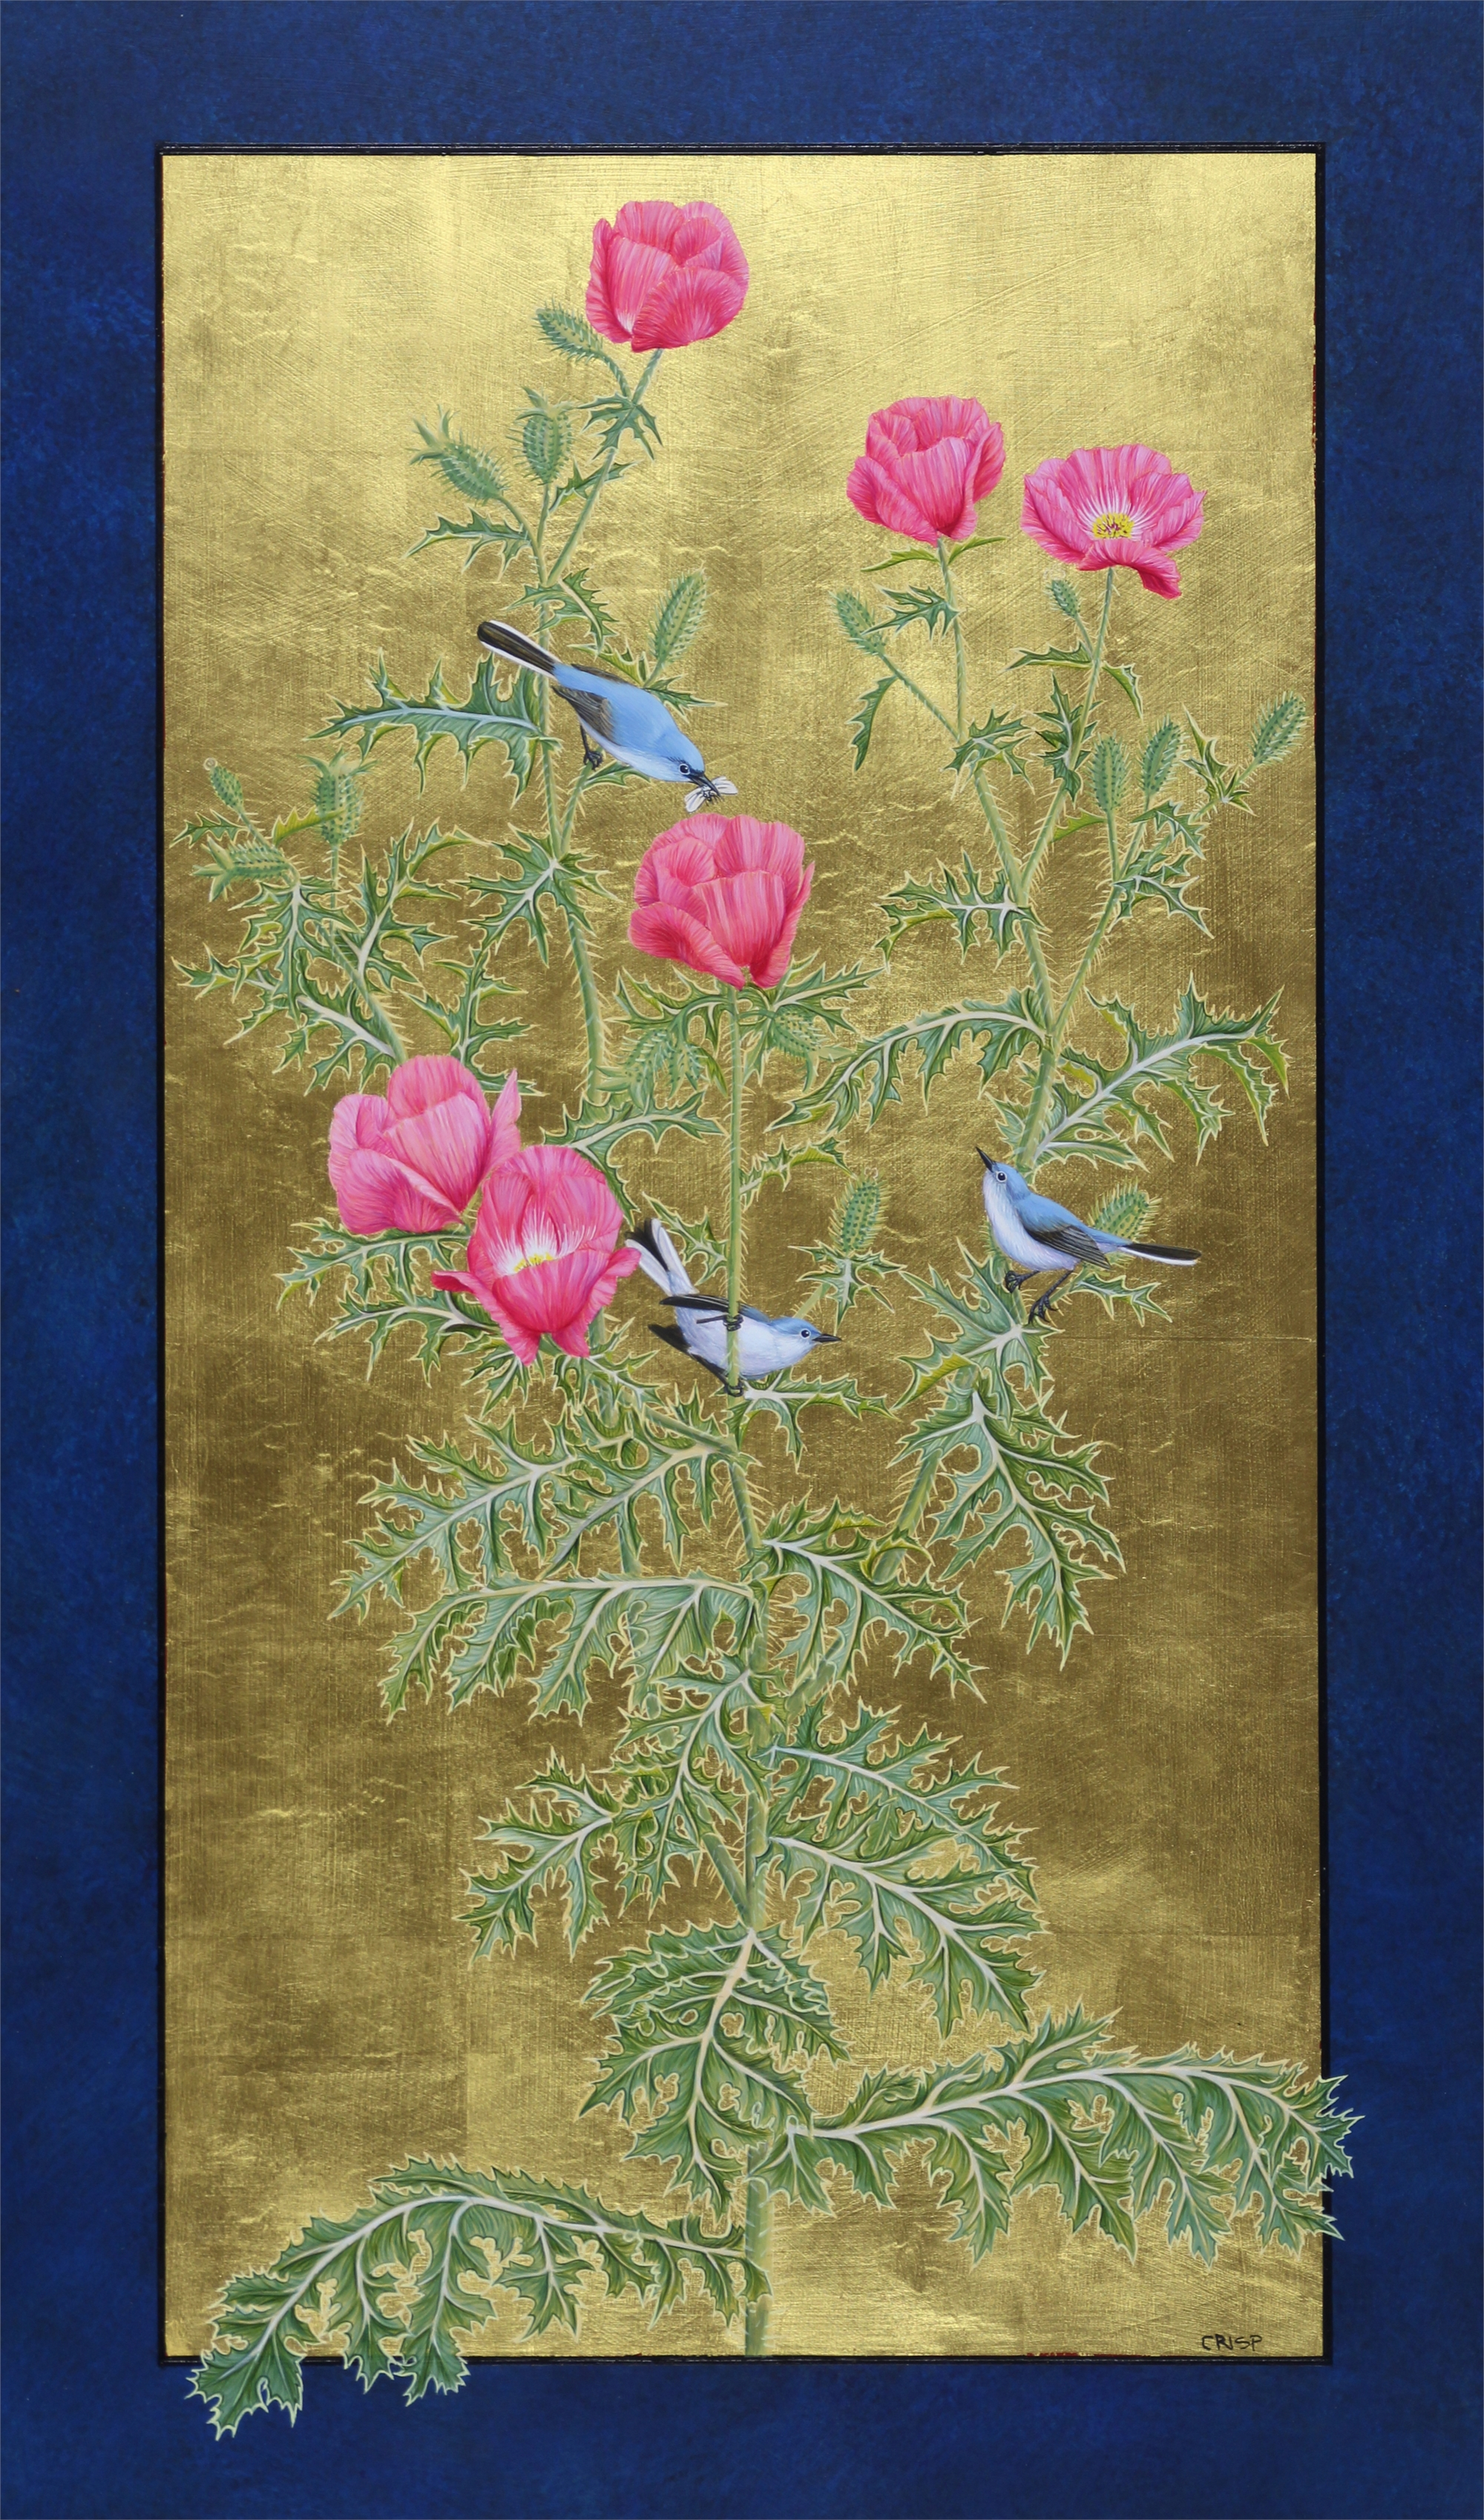 Rose Prickly Poppy and Blue-gray Gnatcatchers by Margie Crisp